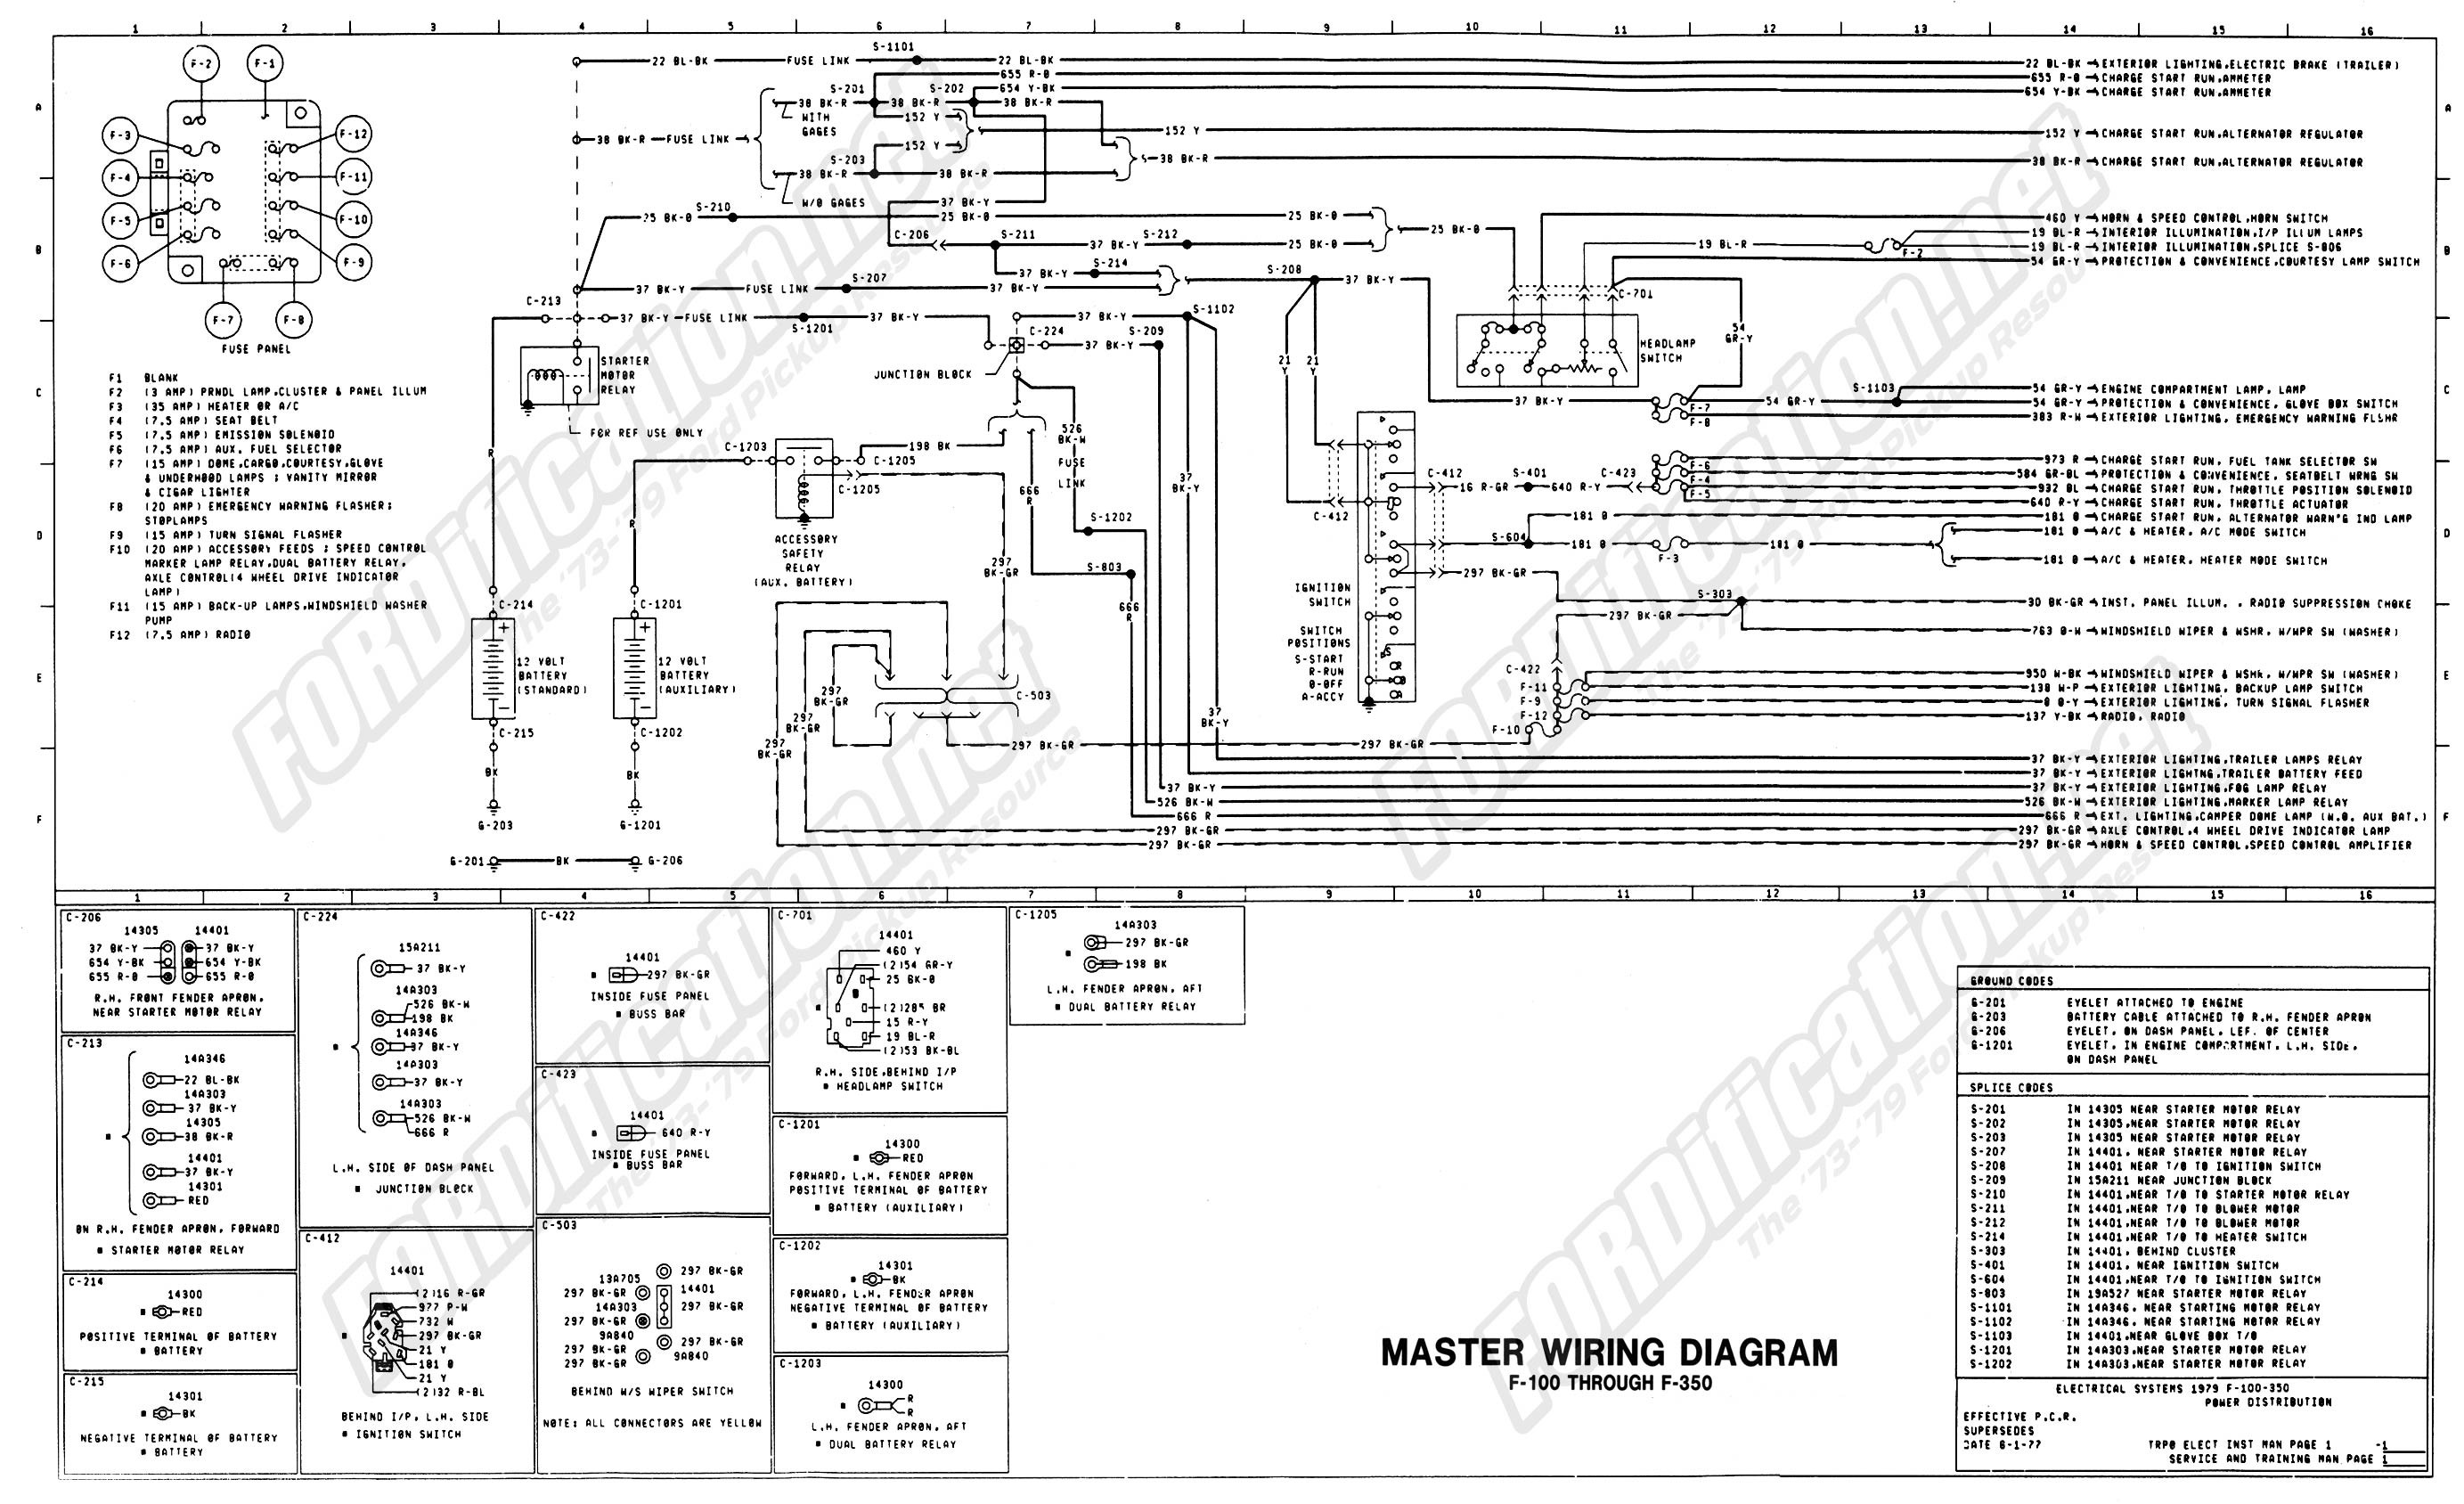 Ford Tail Light Wiring Diagram 1973 1979 ford Truck Wiring Diagrams & Schematics fordification Of Ford Tail Light Wiring Diagram